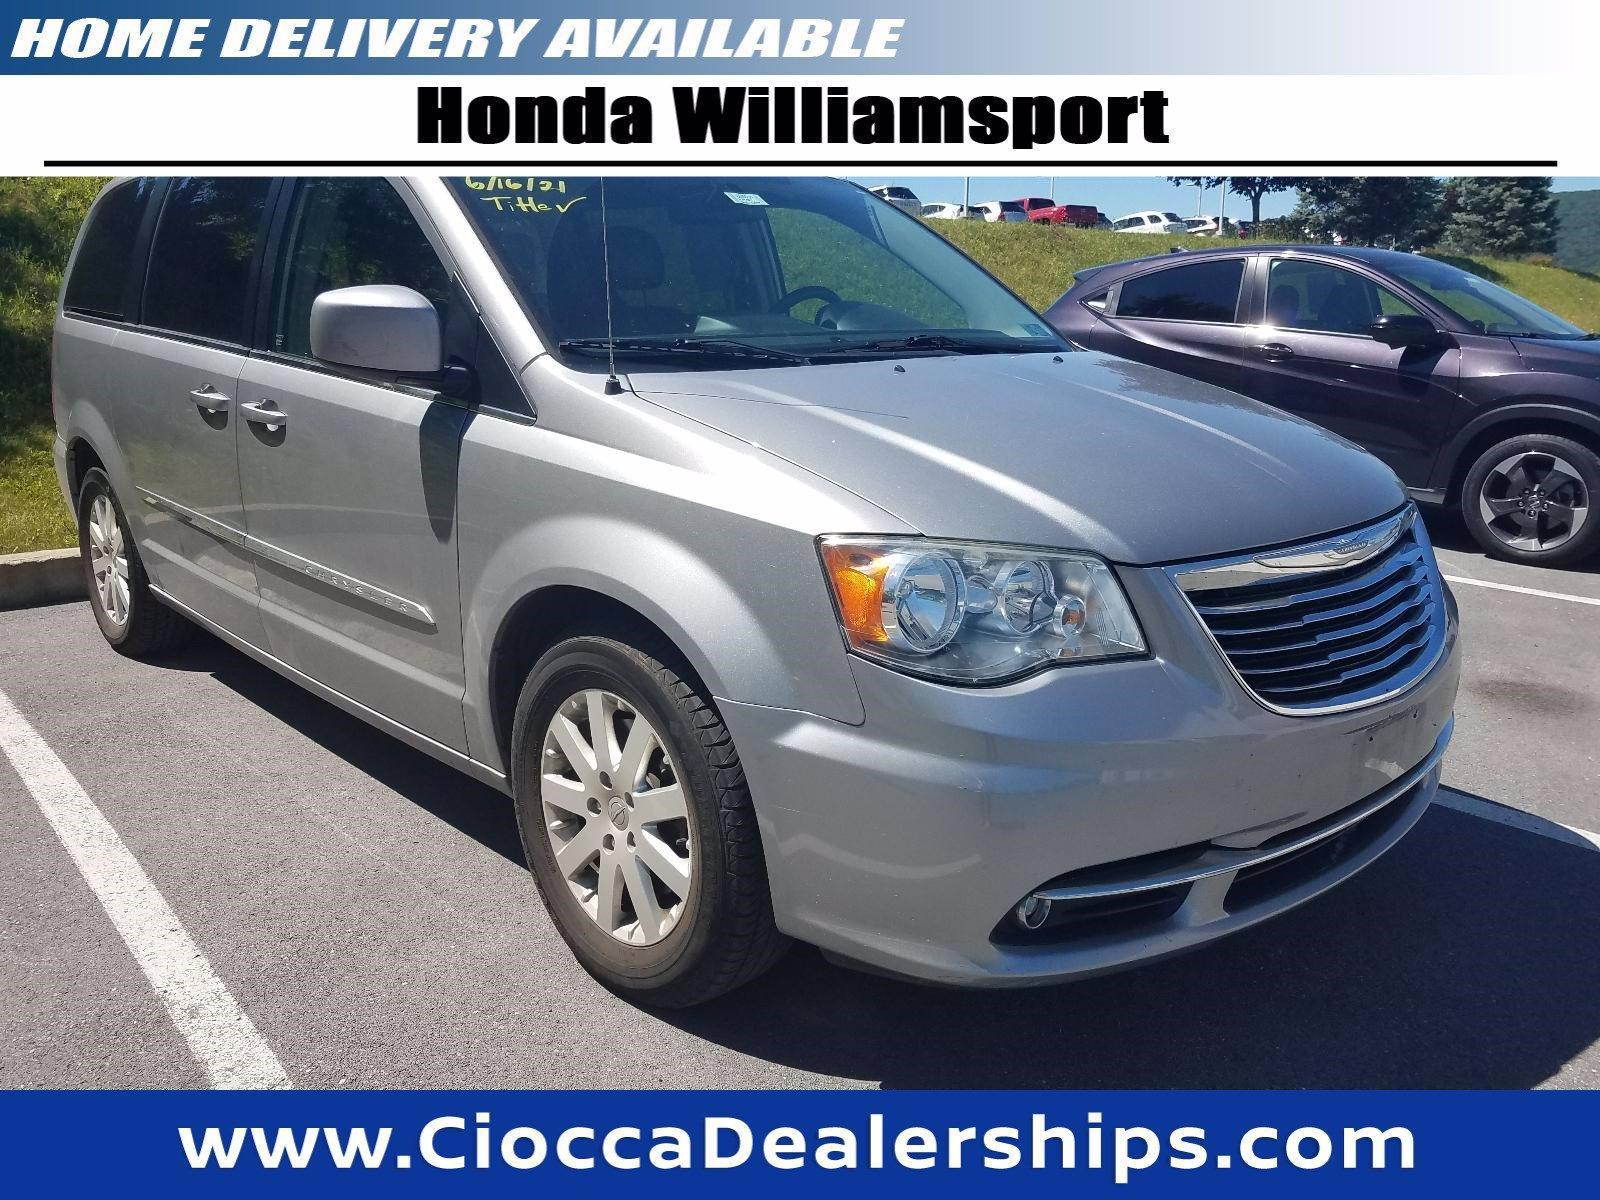 2014 Chrysler Town & Country Vehicle Photo in Muncy, PA 17756